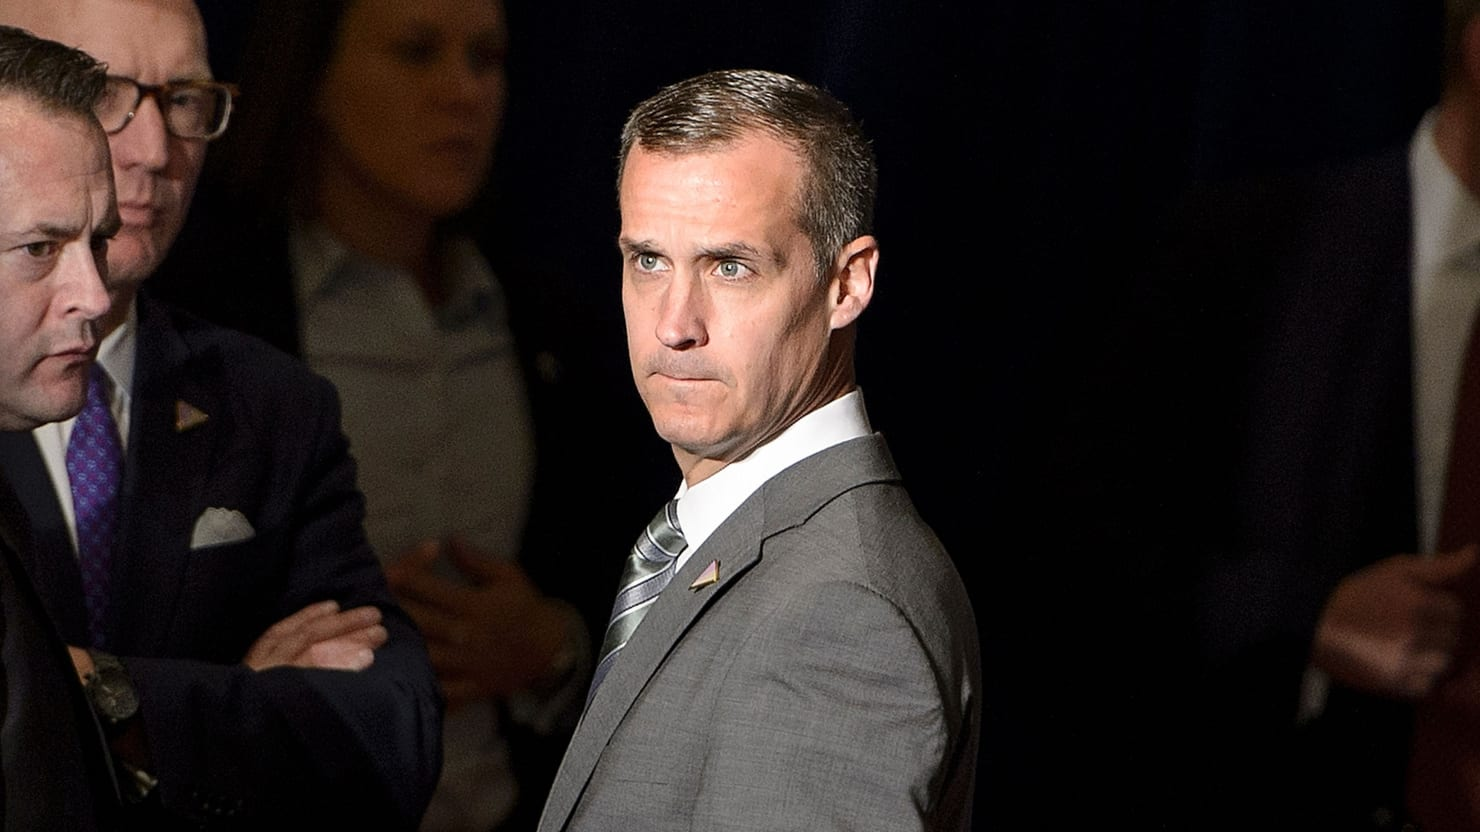 What Can Ex-Trump Aide Corey Lewandowski Say on CNN?